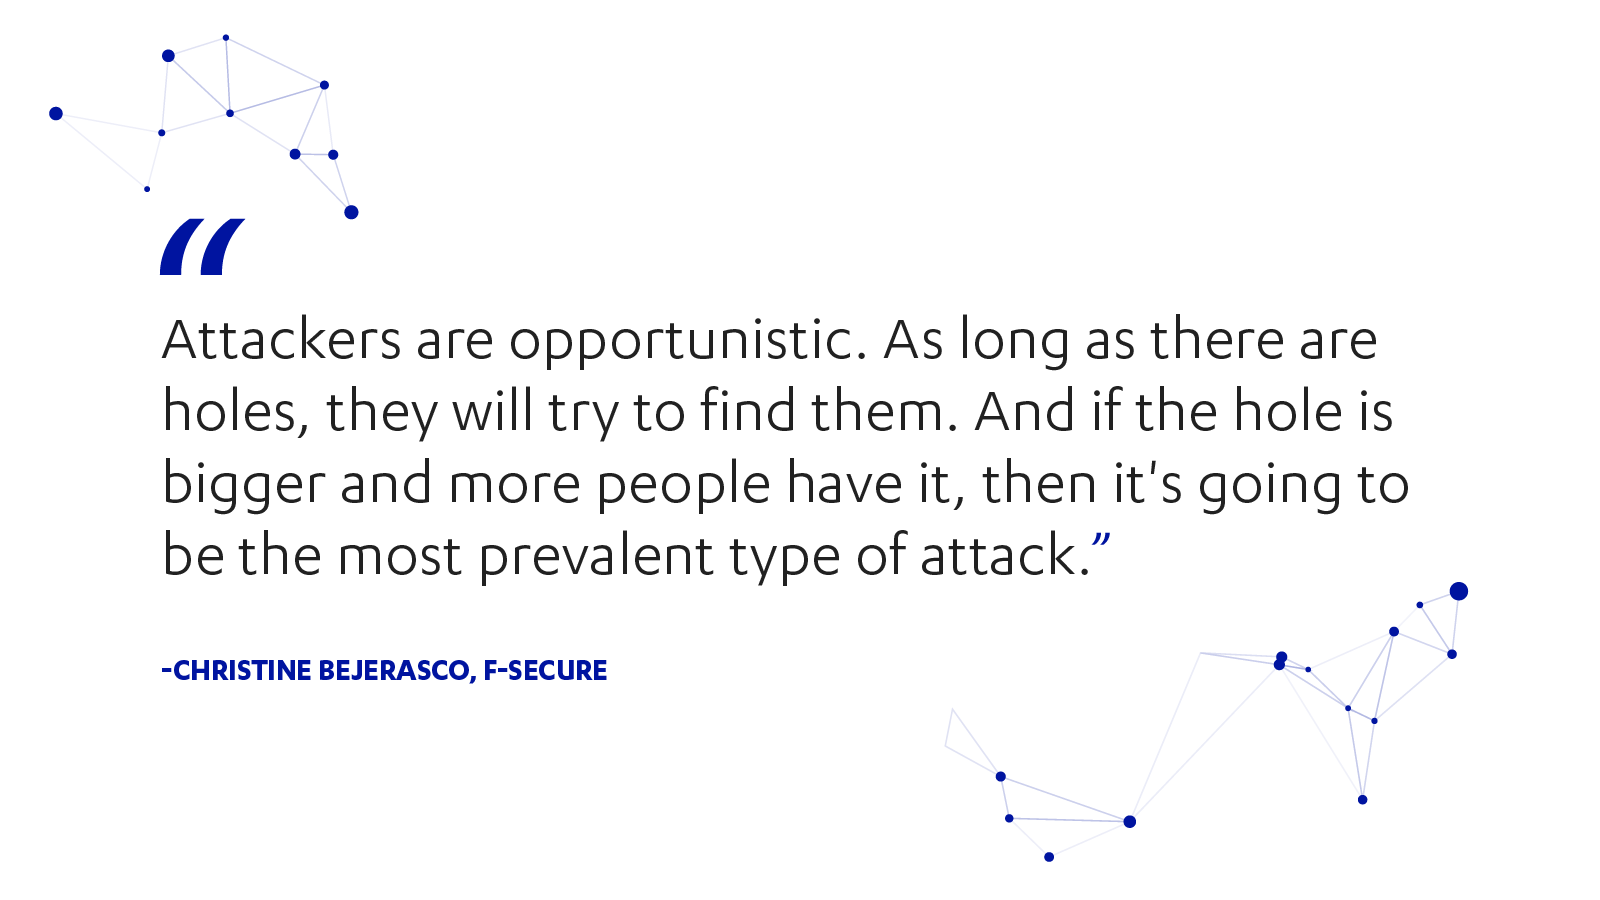 Attackers are opportunistic, says Christine Bejerasco